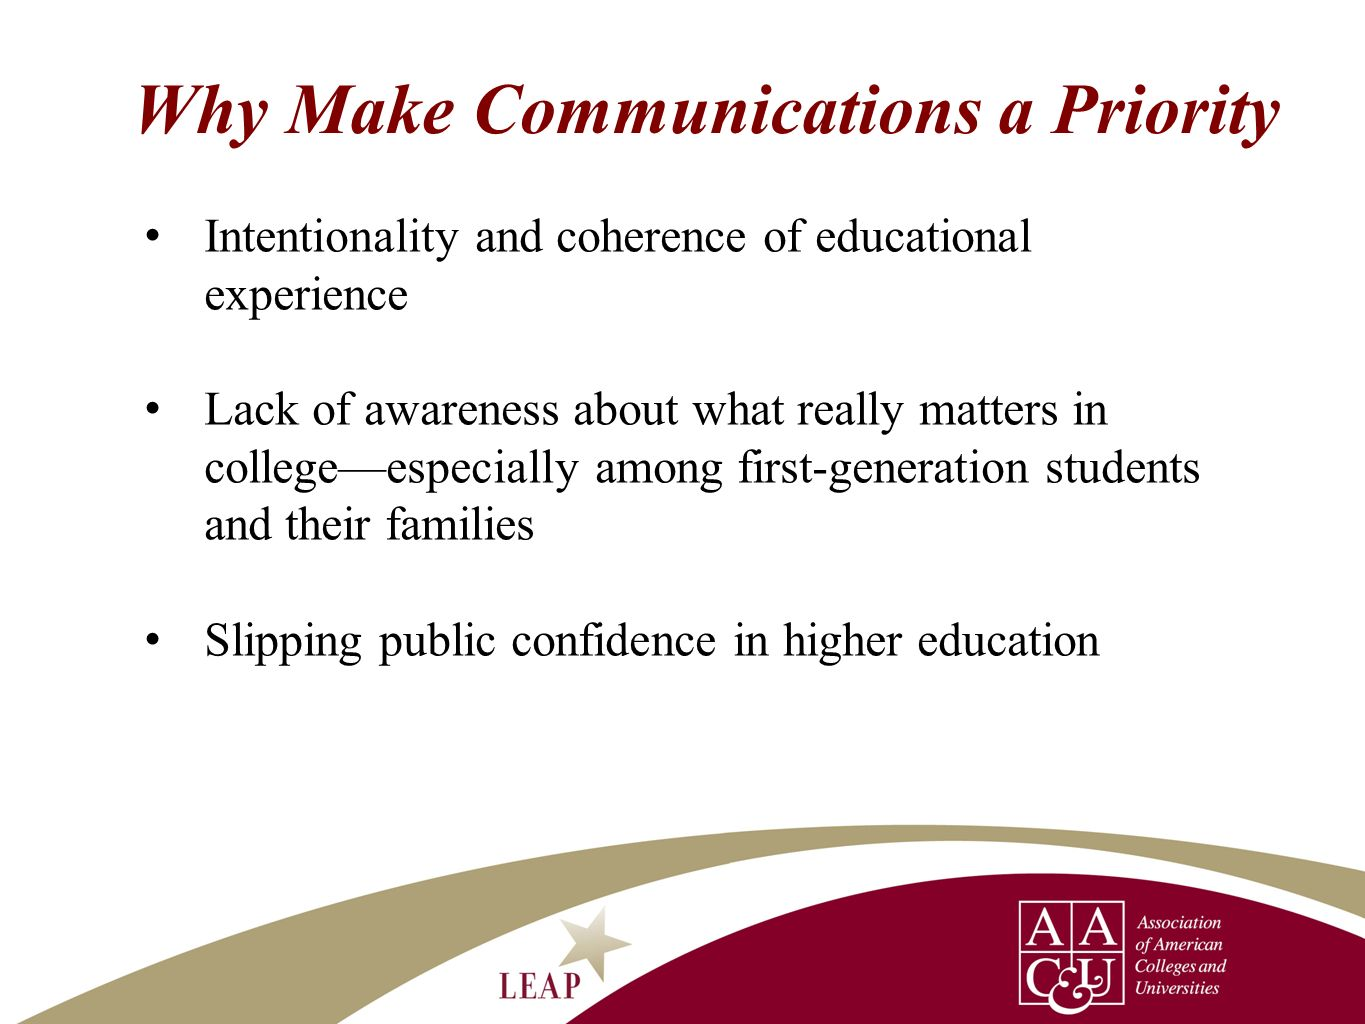 Why Make Communications a Priority Intentionality and coherence of educational experience Lack of awareness about what really matters in collegeespeci